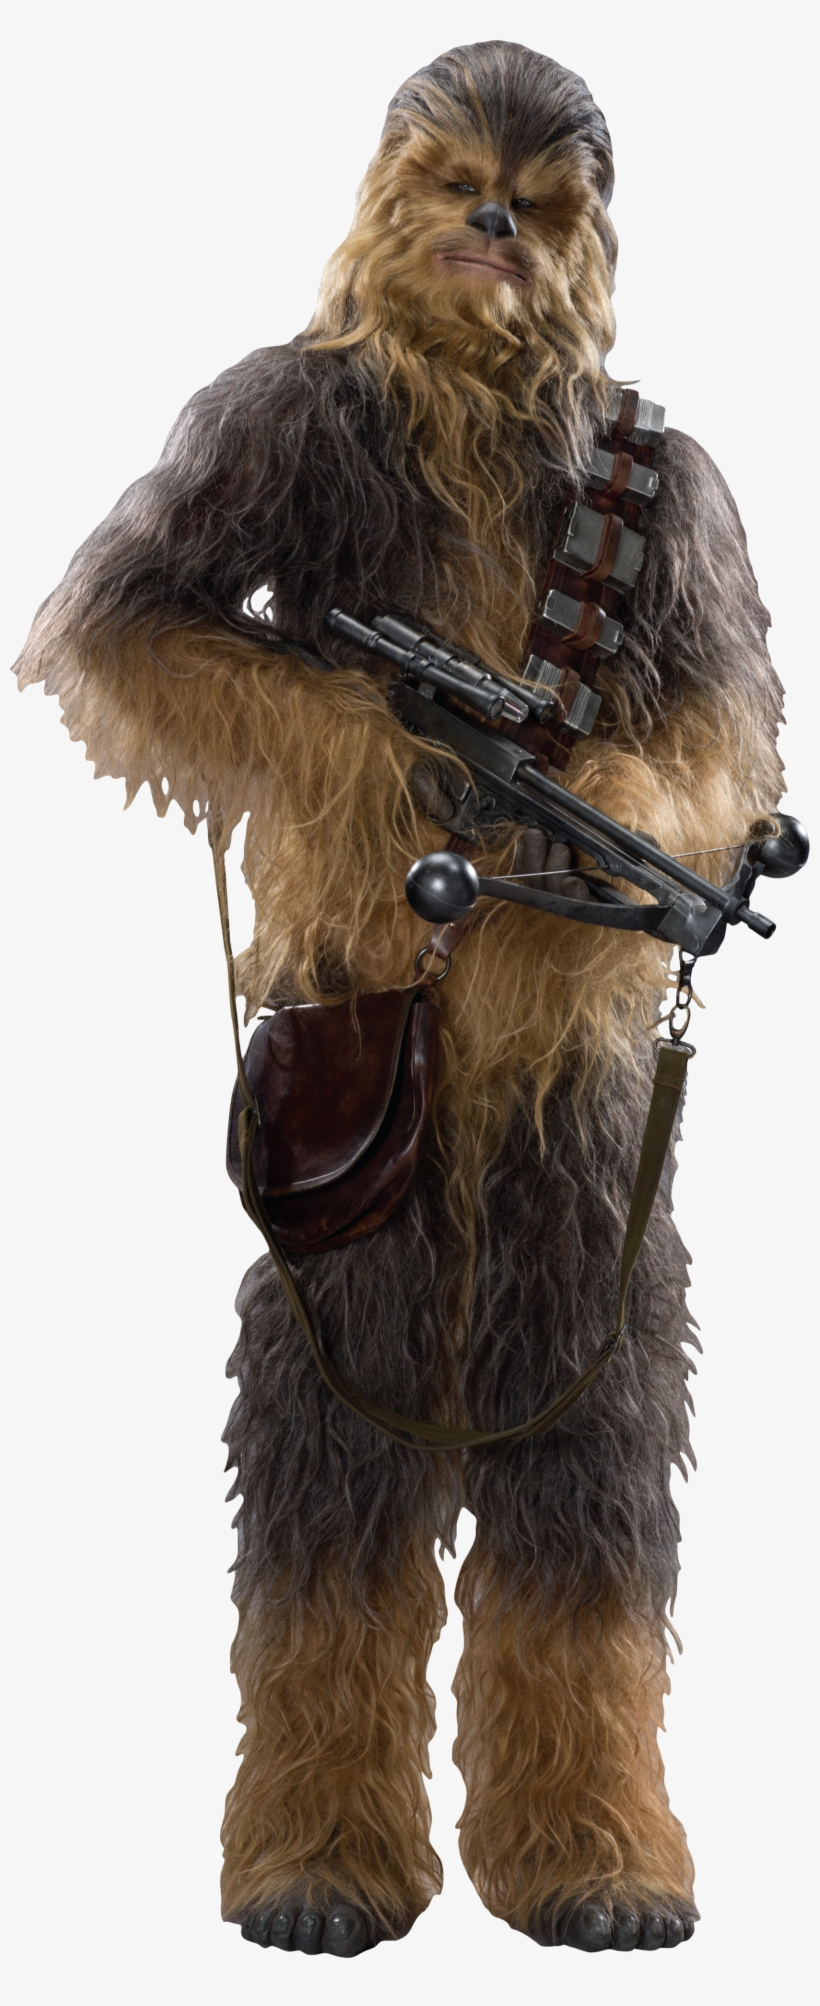 Banner Royalty Free Download Image Tfa Fathead Png - Chewbacca Star Wars Vii Cardboard Cutout Standup, transparent png #1782691